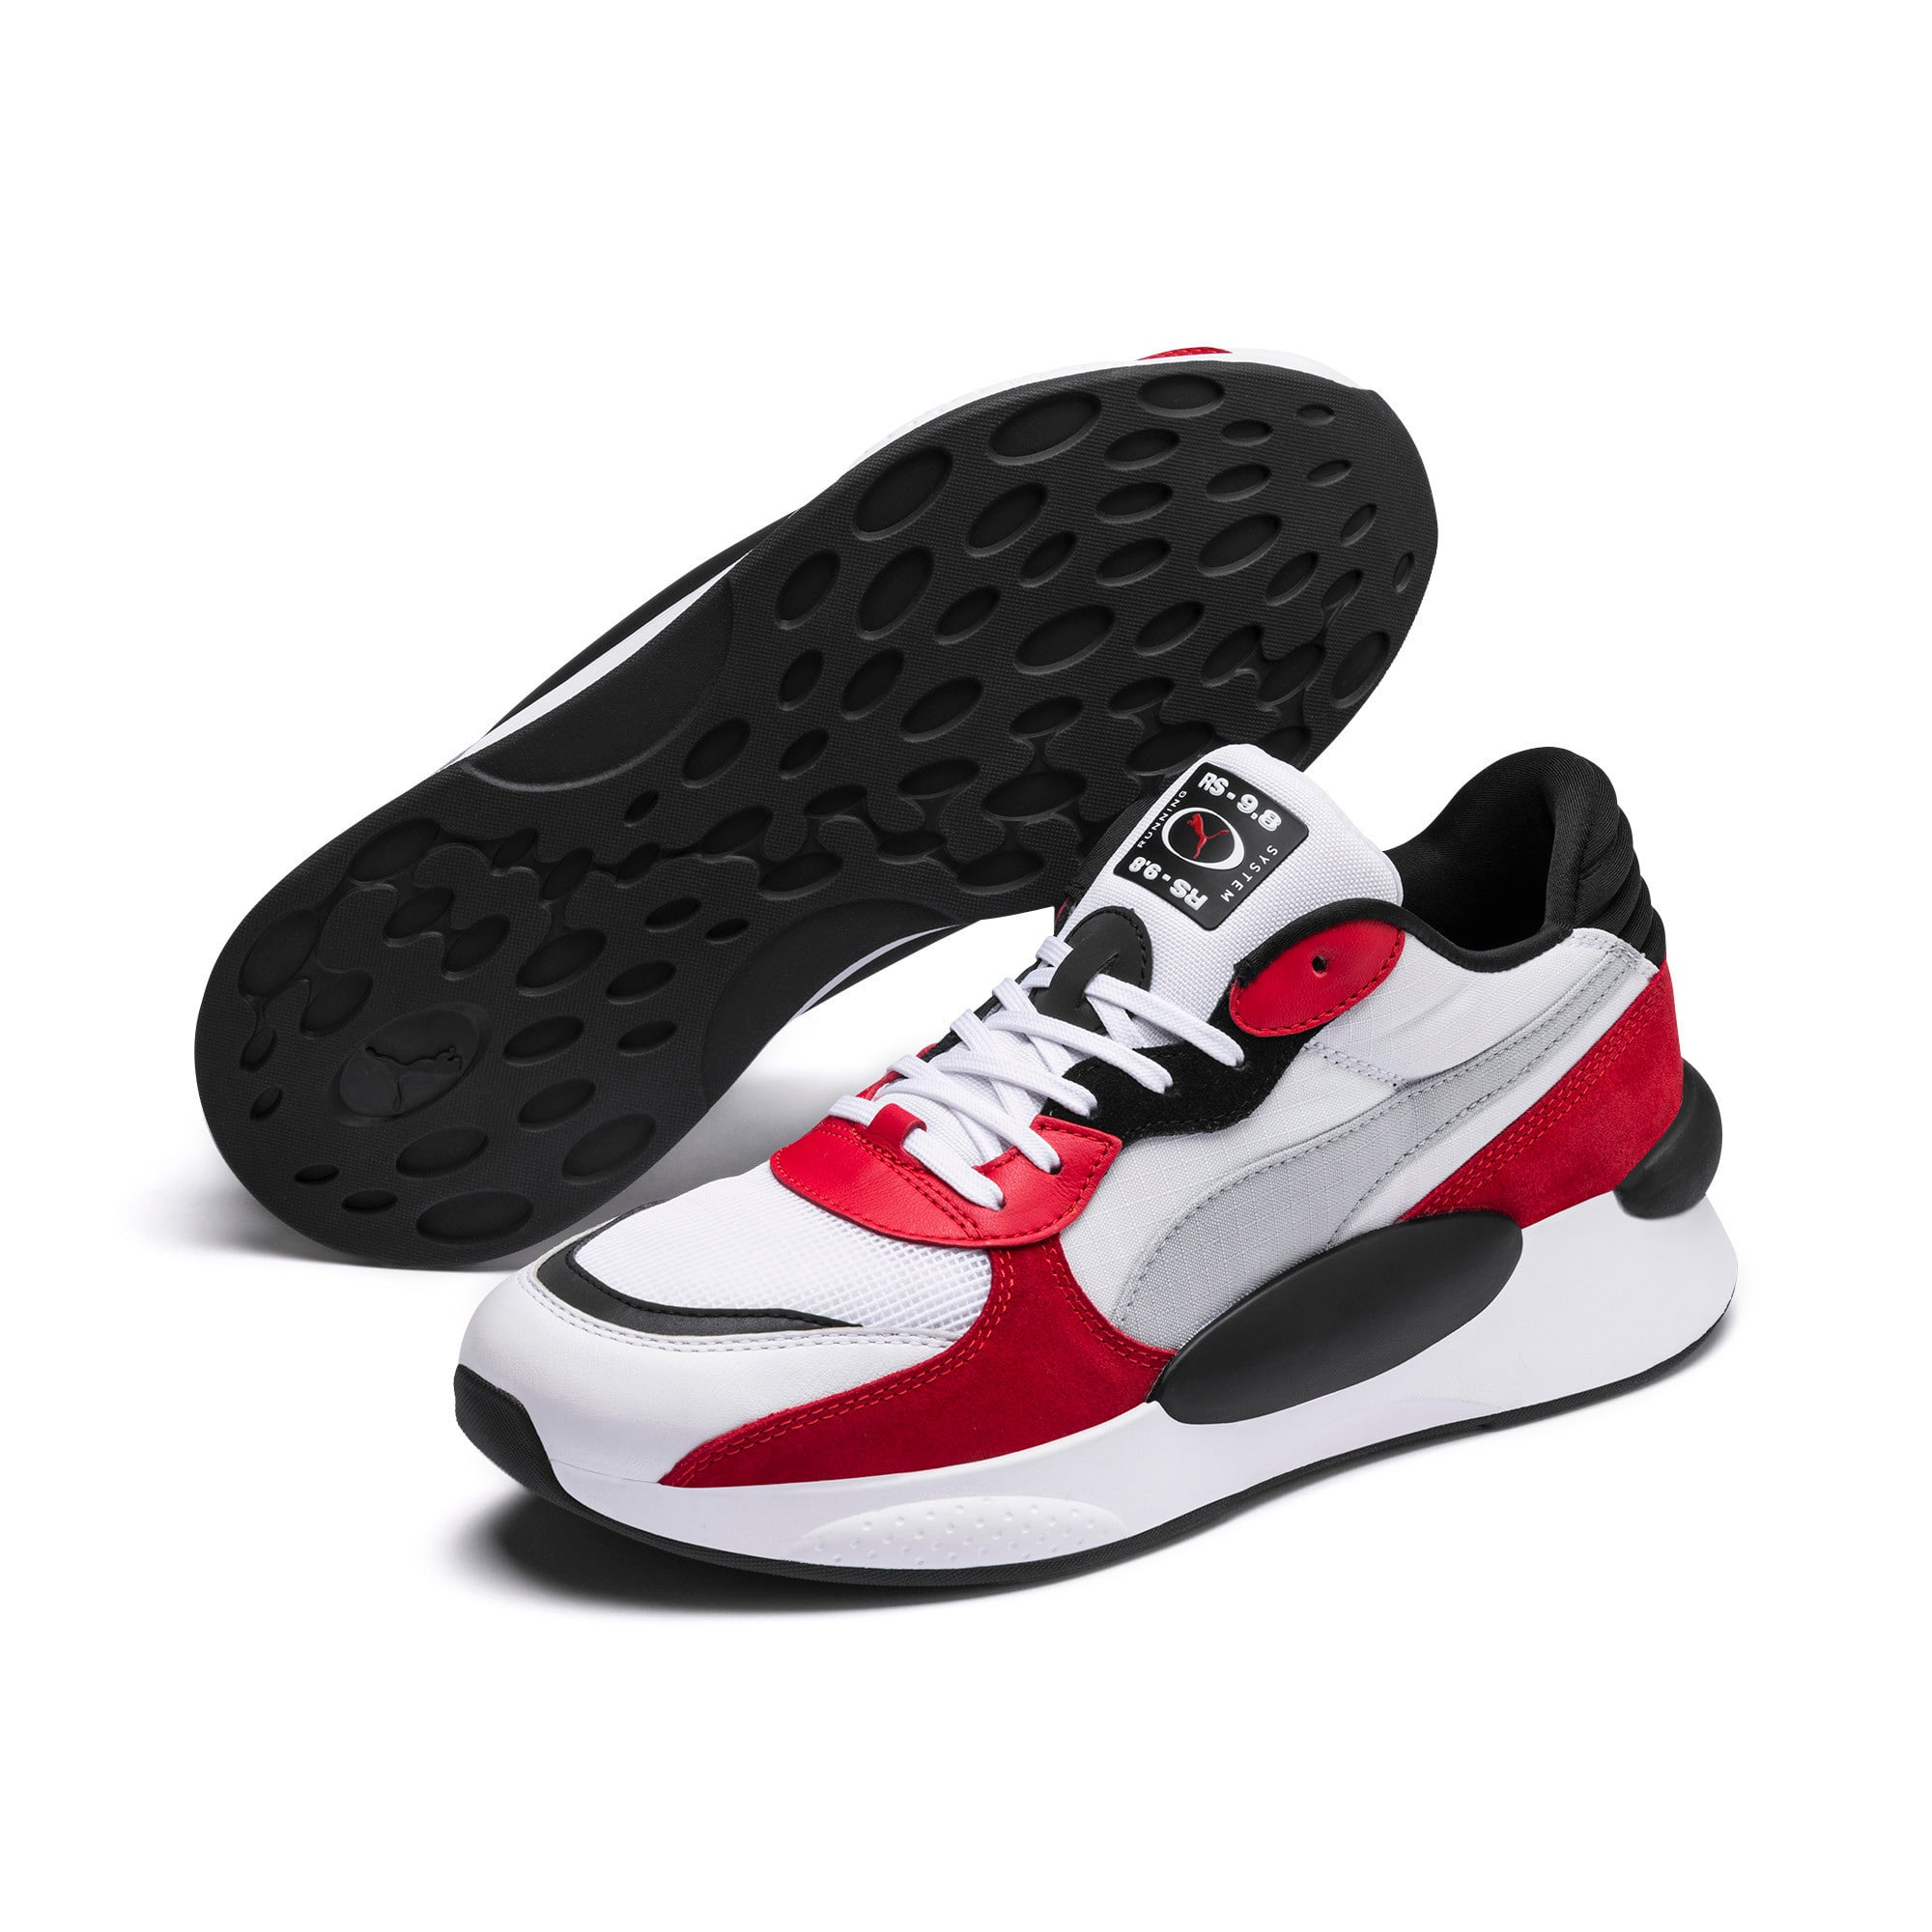 Thumbnail 4 of RS 9.8 Space Trainers, Puma White-High Risk Red, medium-IND